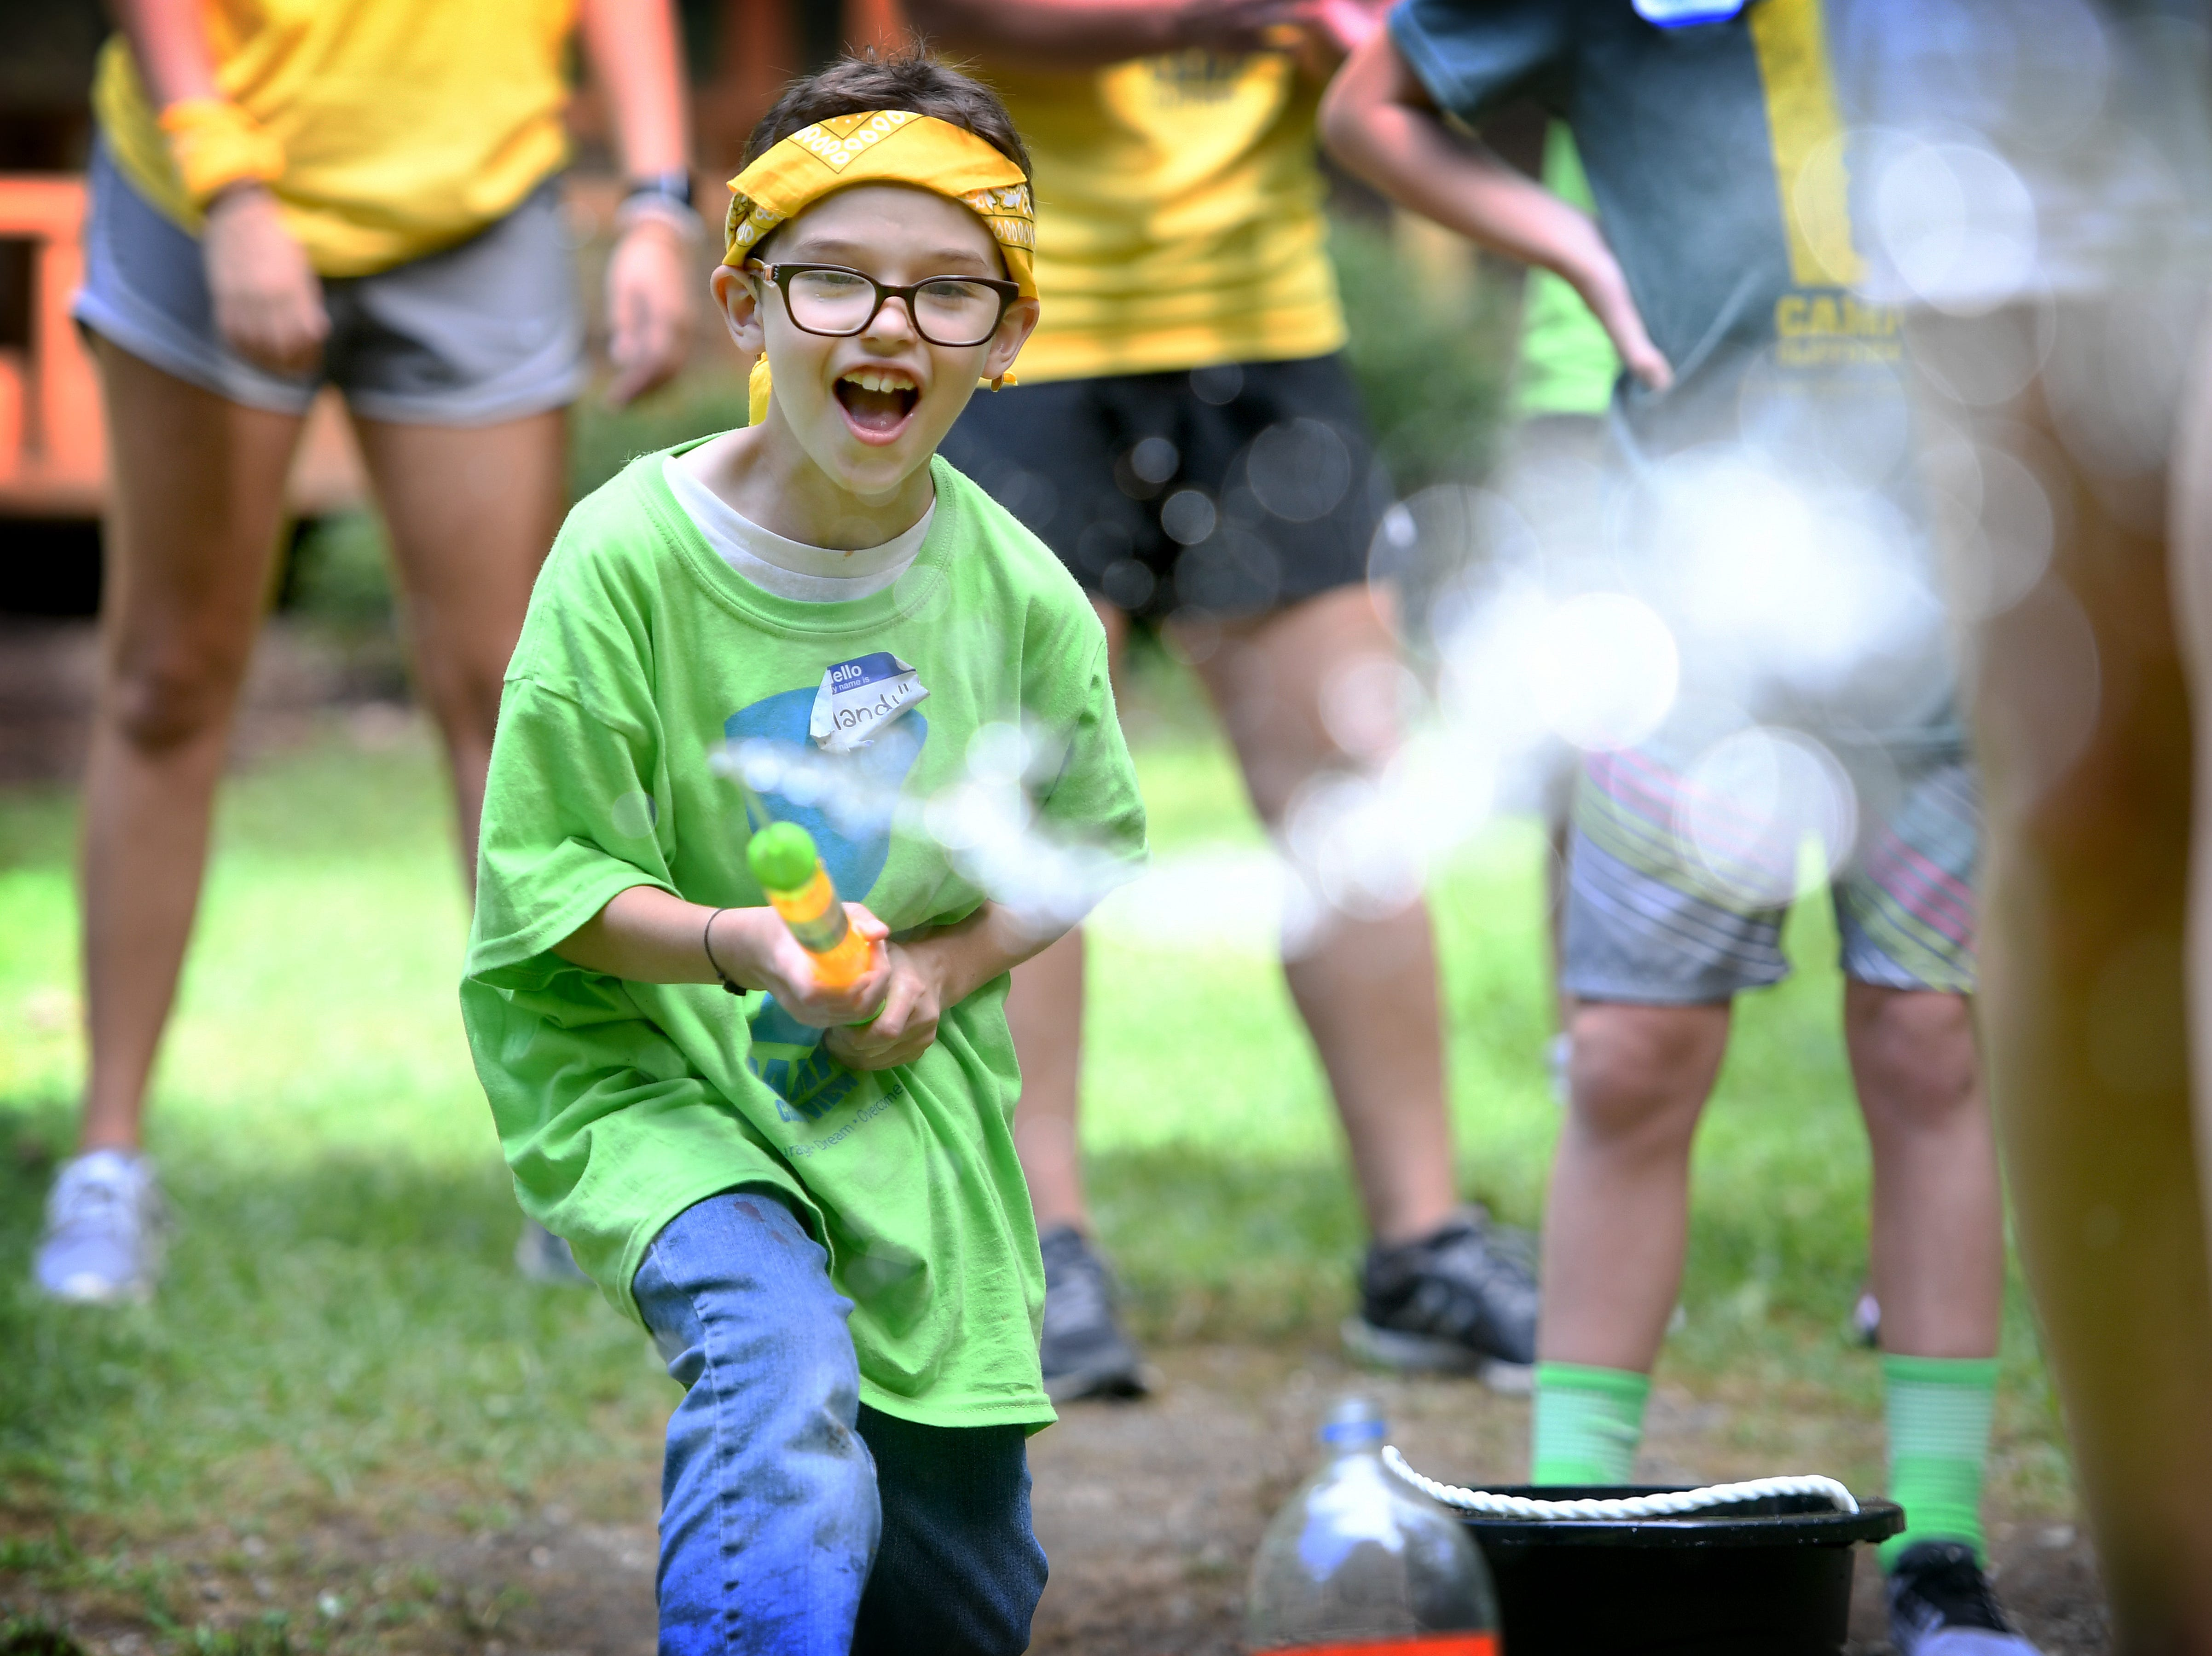 Ryland Rice, 8, shoots a squirt cannon at a ball as he runs a team-building relay race during Camp Cliffview at Camp Ton-A-Wanda in Hendersonville on Saturday, Aug. 11, 2018. The camp is a one-day outdoor experience for students with special needs. This year's camp served 16 campers from Henderson, Transylvania and Buncombe Counties utilizing more than 50 volunteers and 20 counselors. The camp, which originated in Tennessee, was held in Hendersonville for the second year and was fully funded thanks to community sponsors.